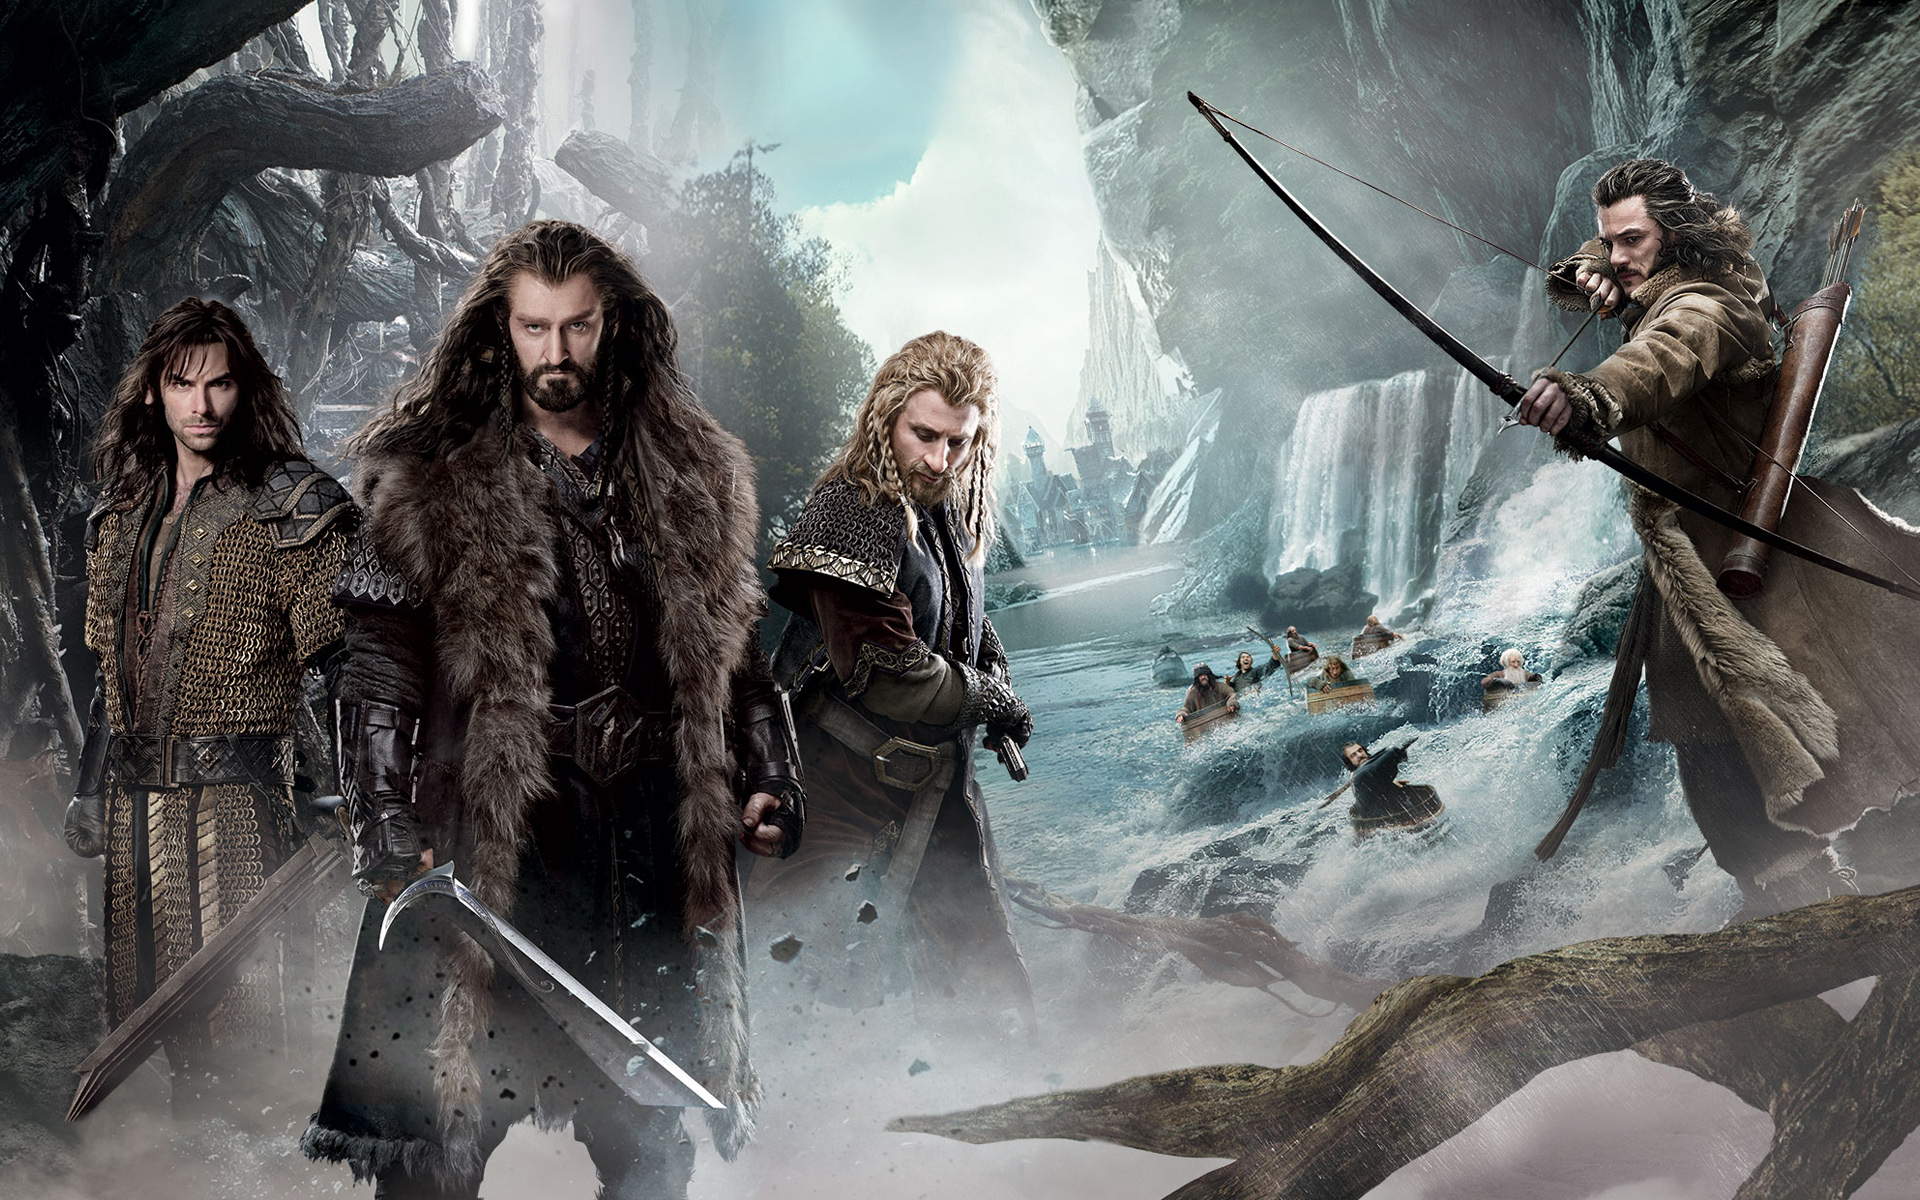 The Hobbit Movie wallpaper